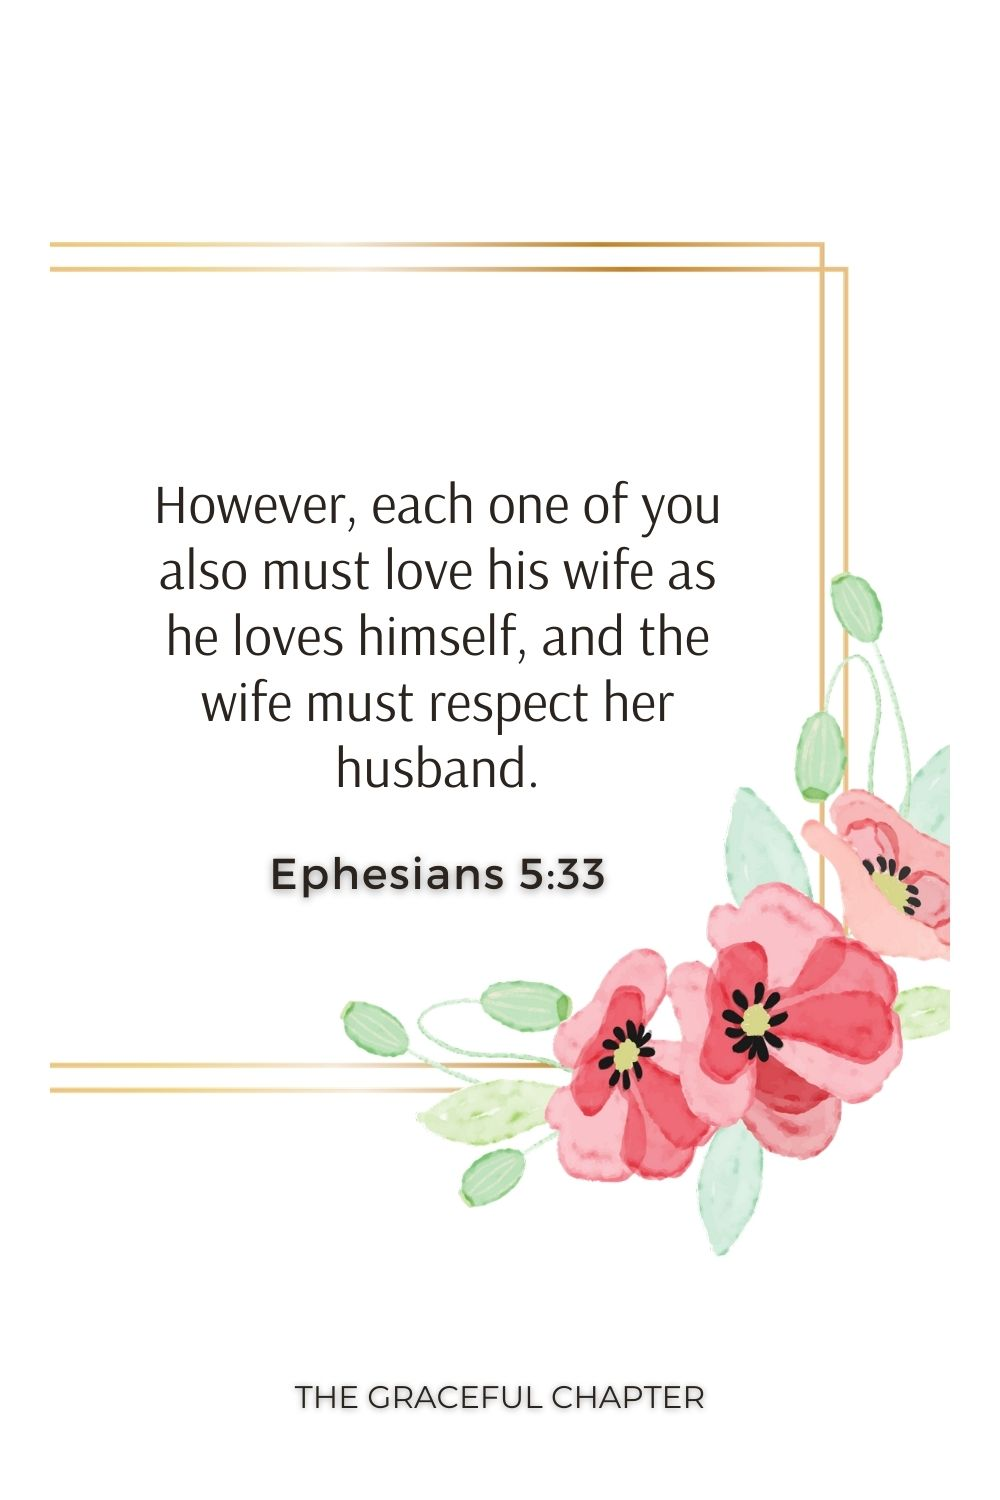 However, each one of you also must love his wife as he loves himself, and the wife must respect her husband. Ephesians 5:33